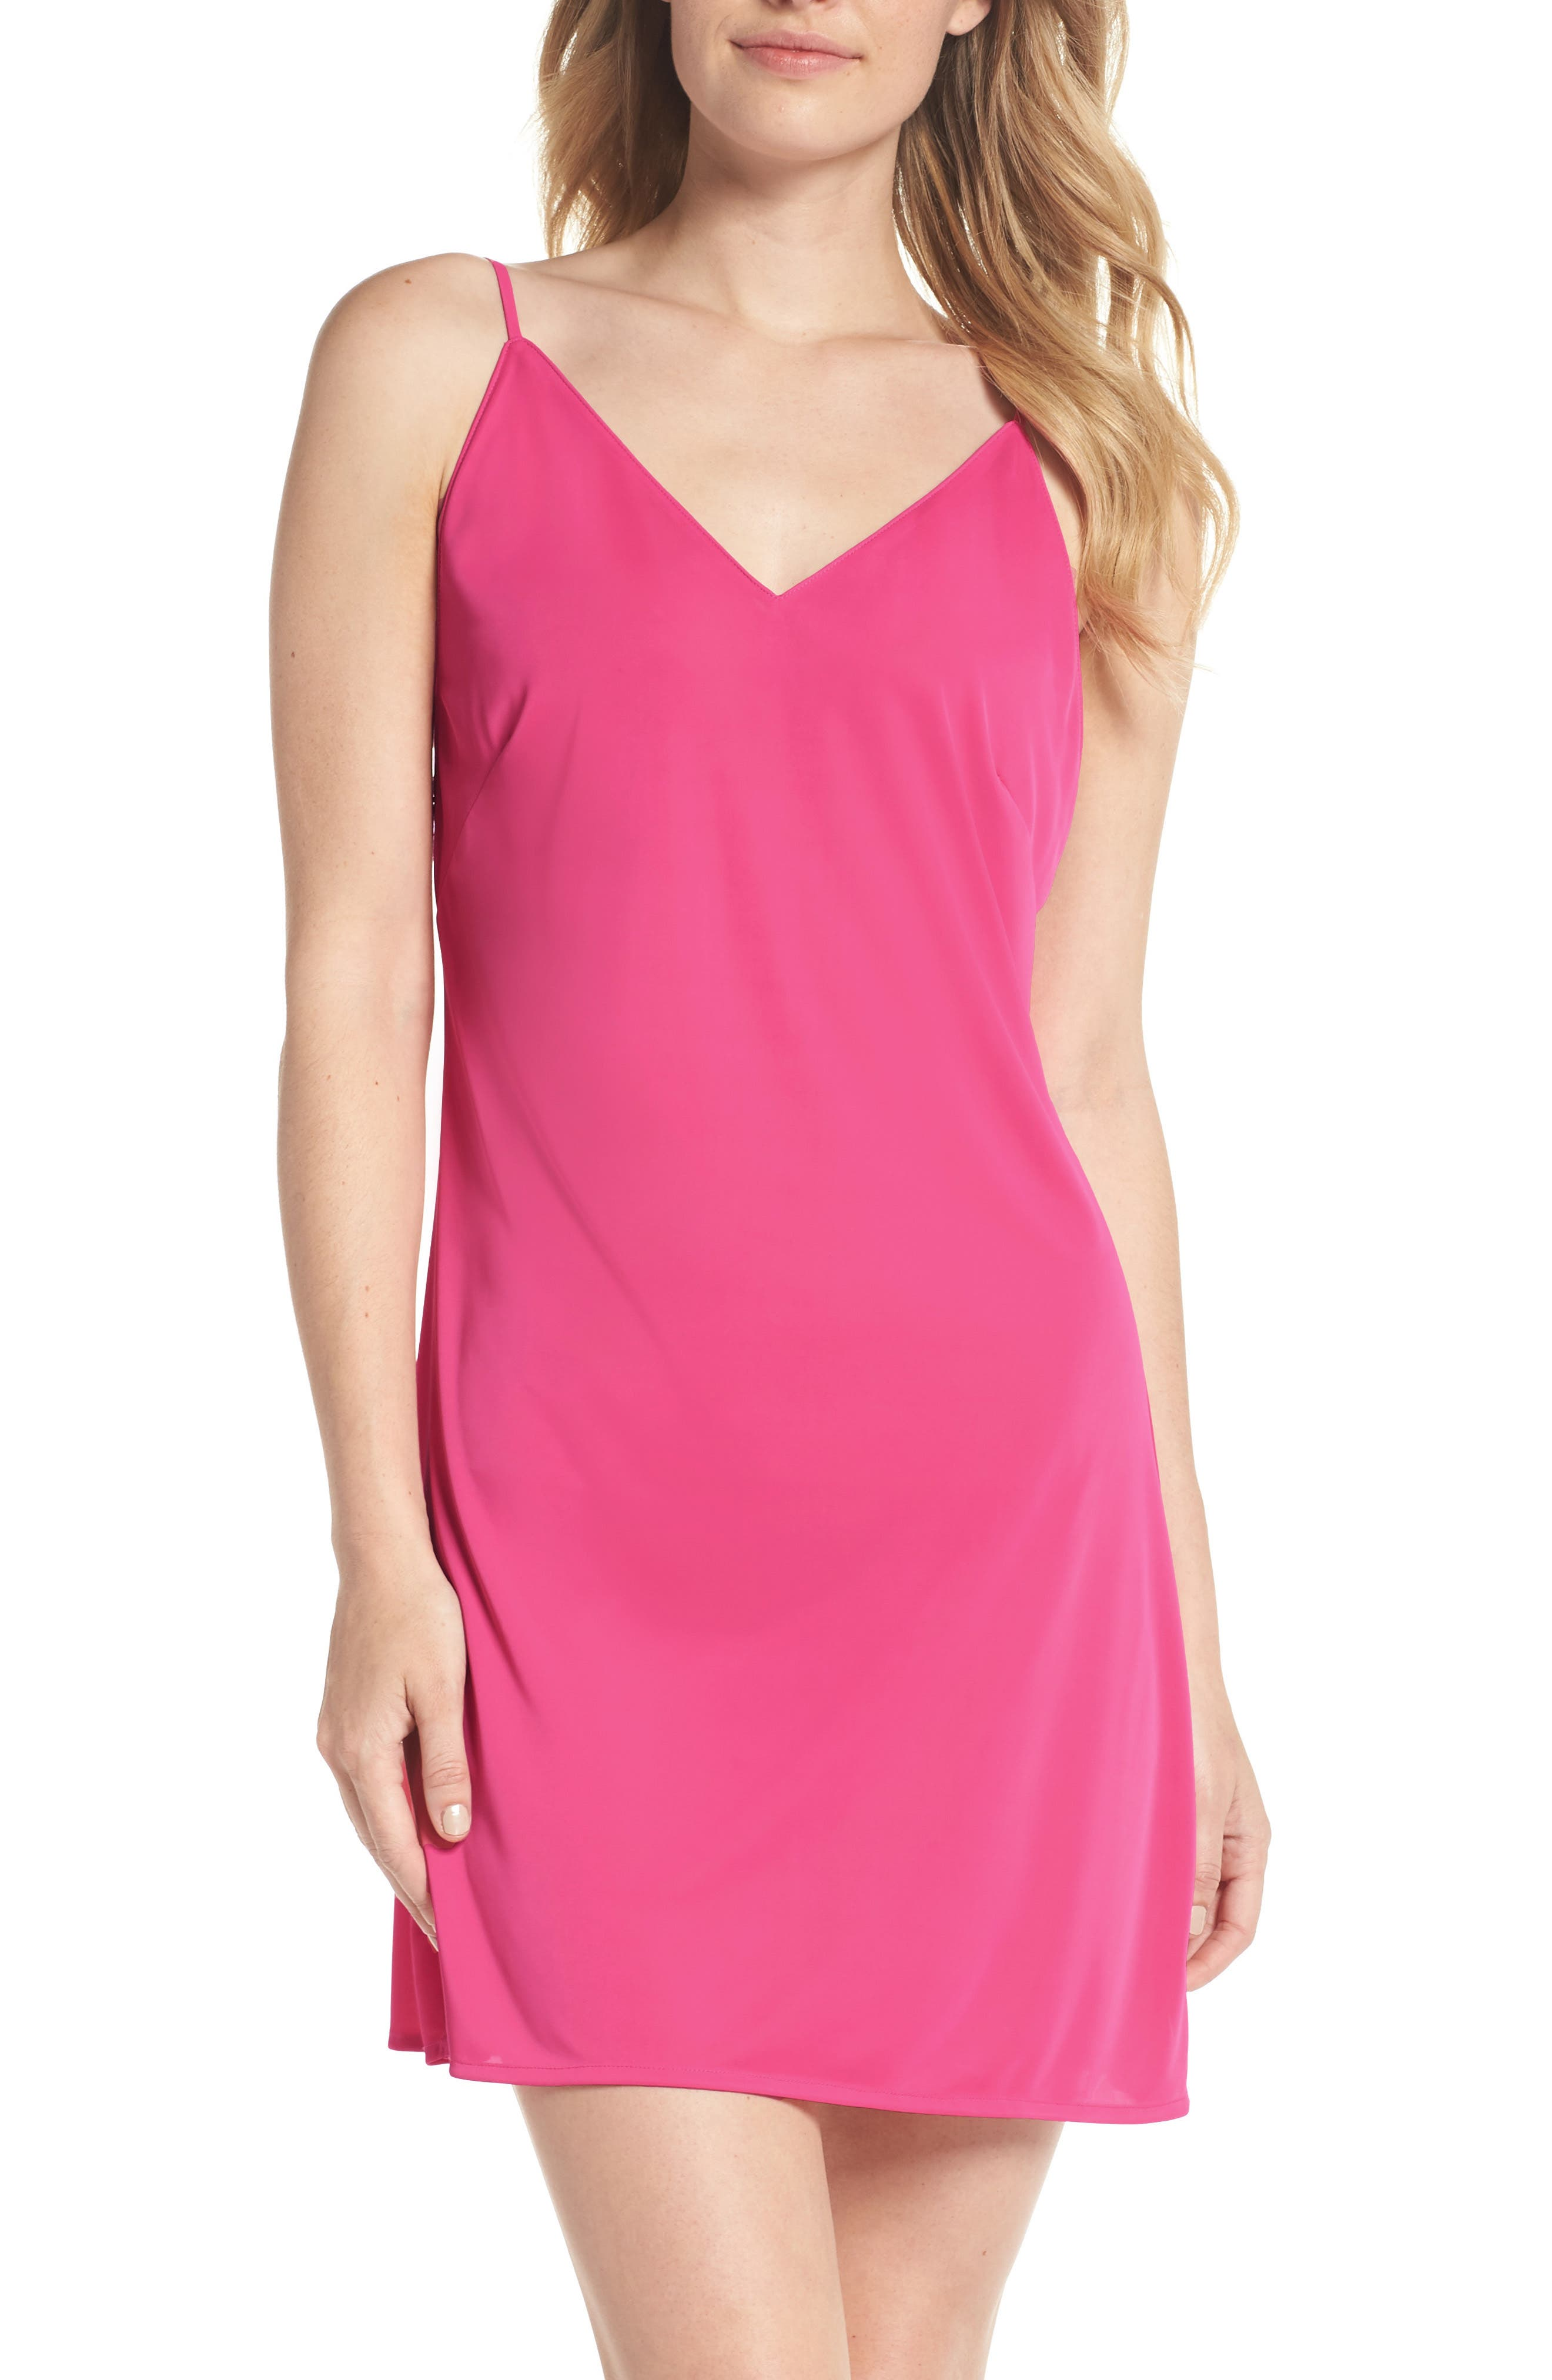 Enchant Chemise,                             Main thumbnail 1, color,                             PIN HIBISCUS PINK